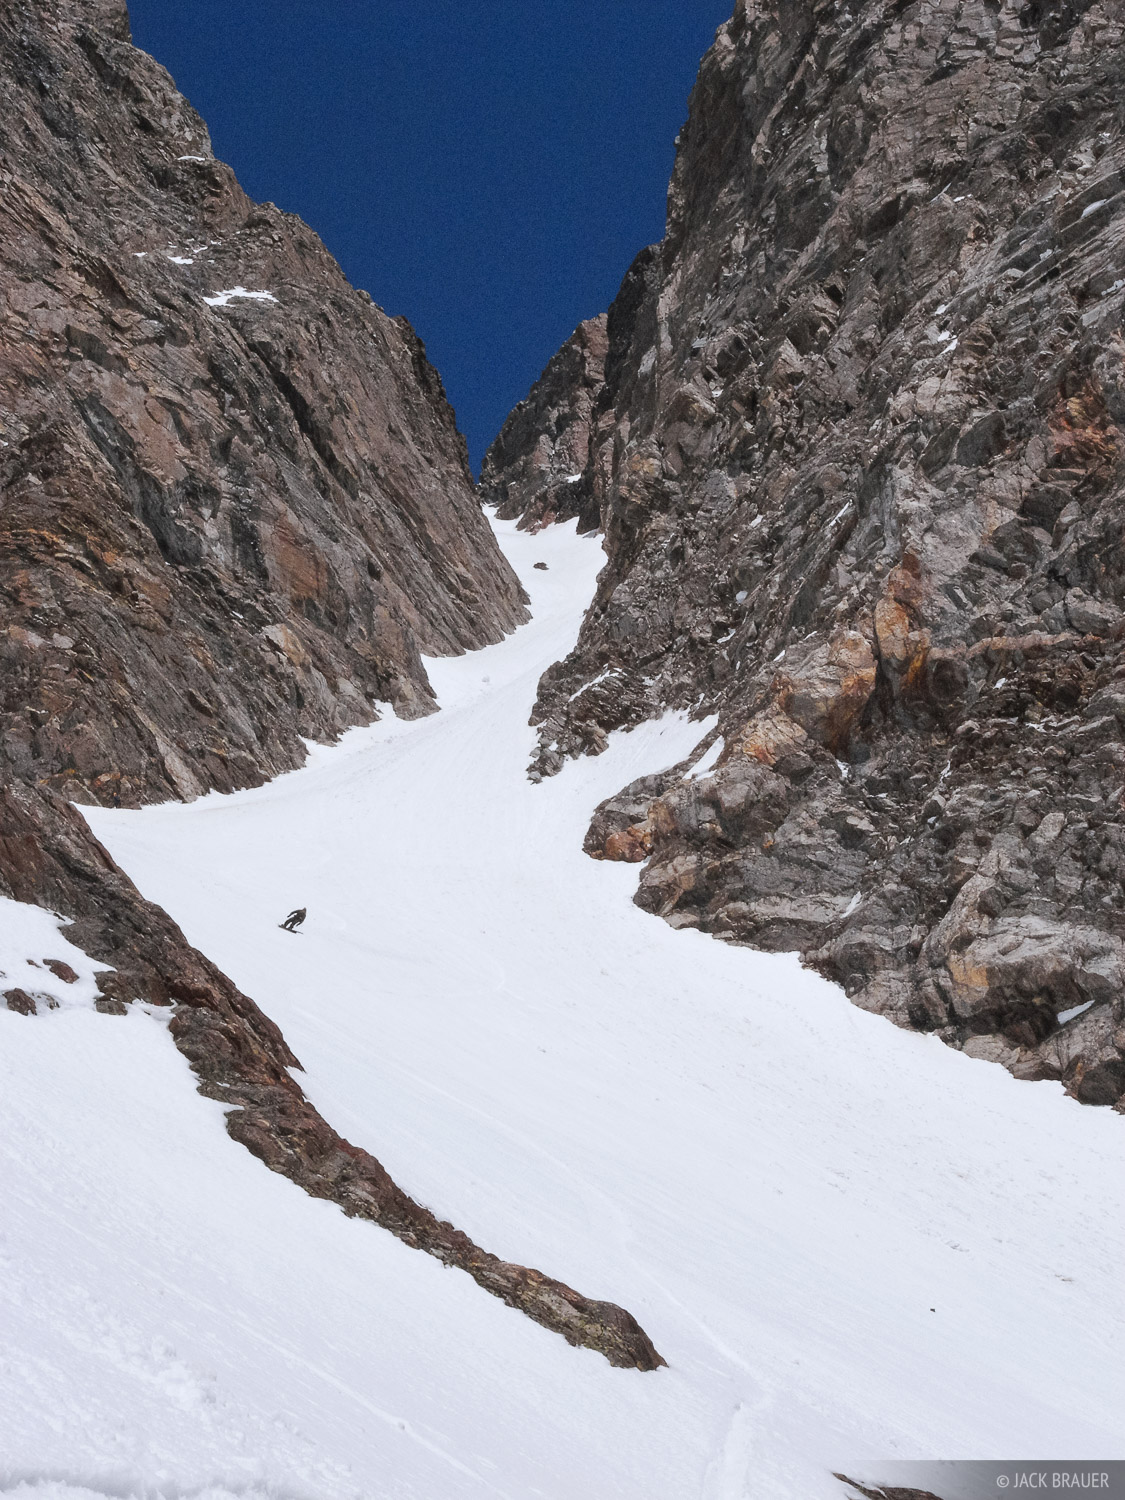 Looking up at the Southwest Couloir on Mt. Moran, as Jason King snowboards down.